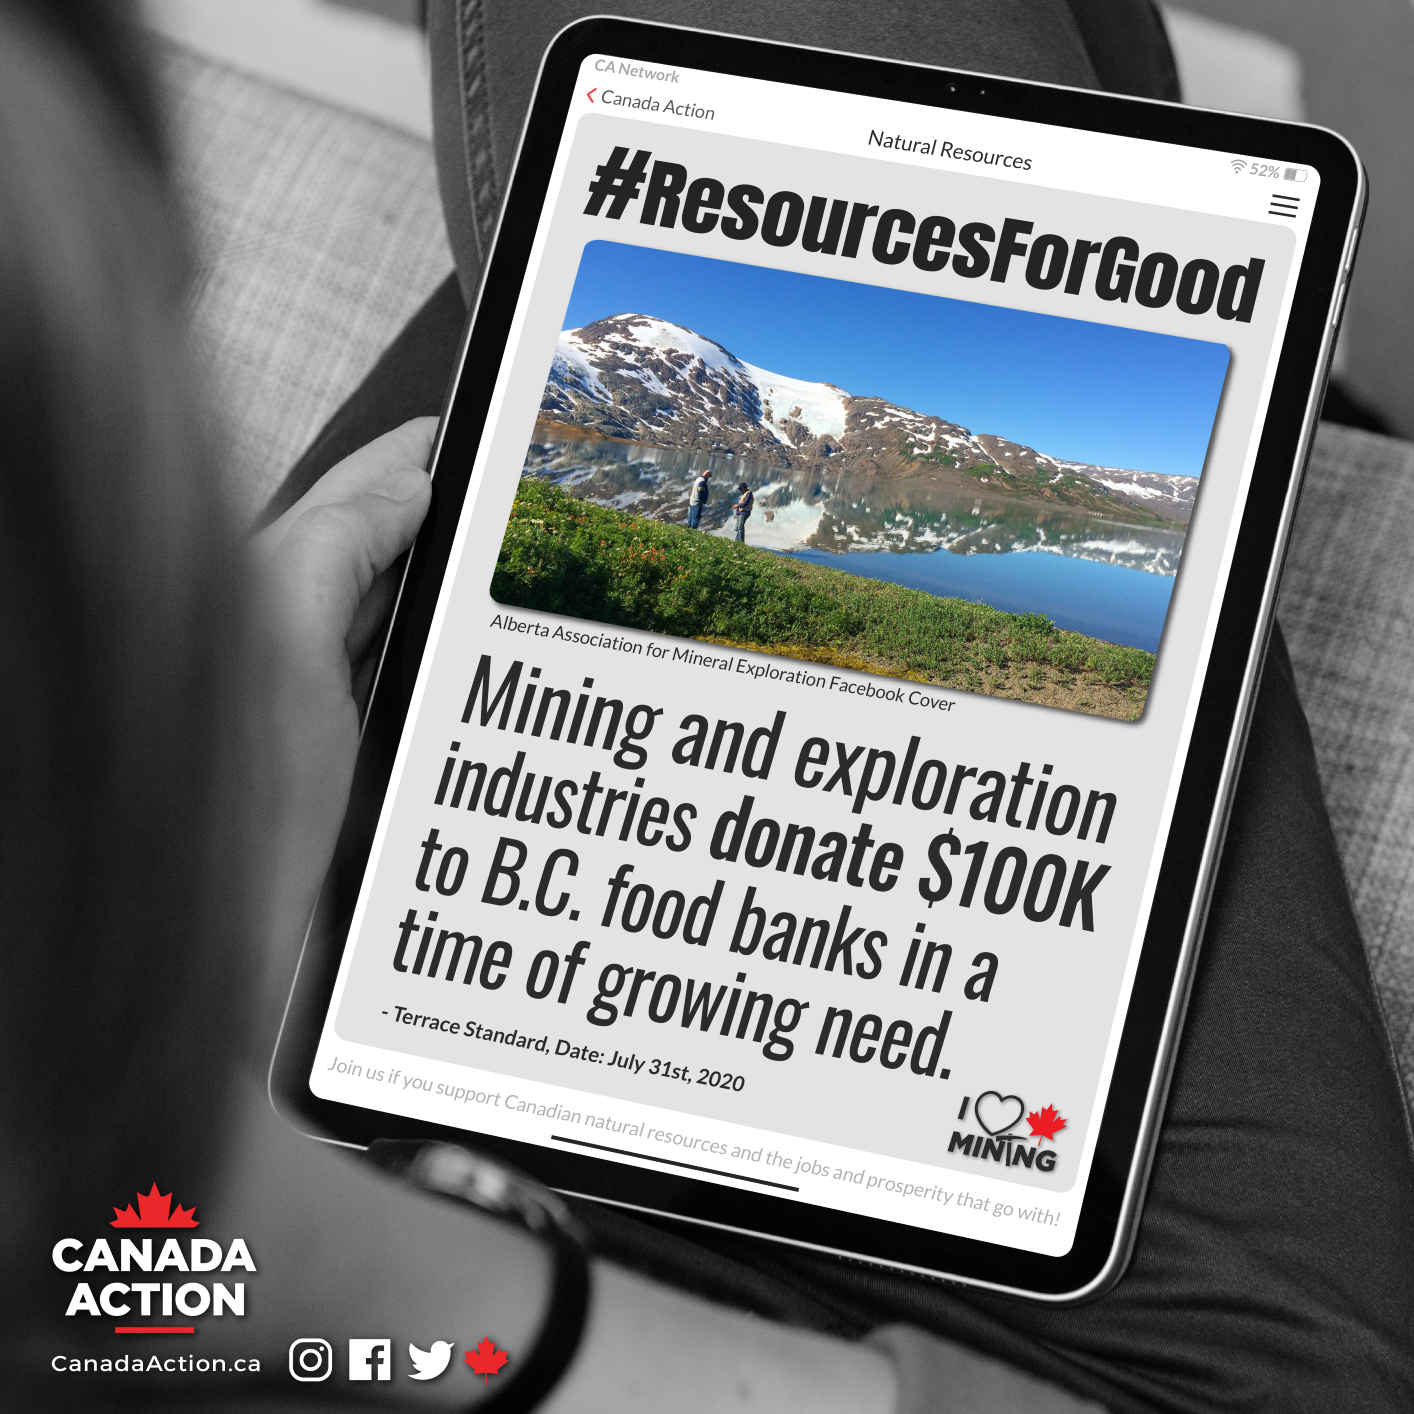 Canadian mining exploration companies donate to BC food bank